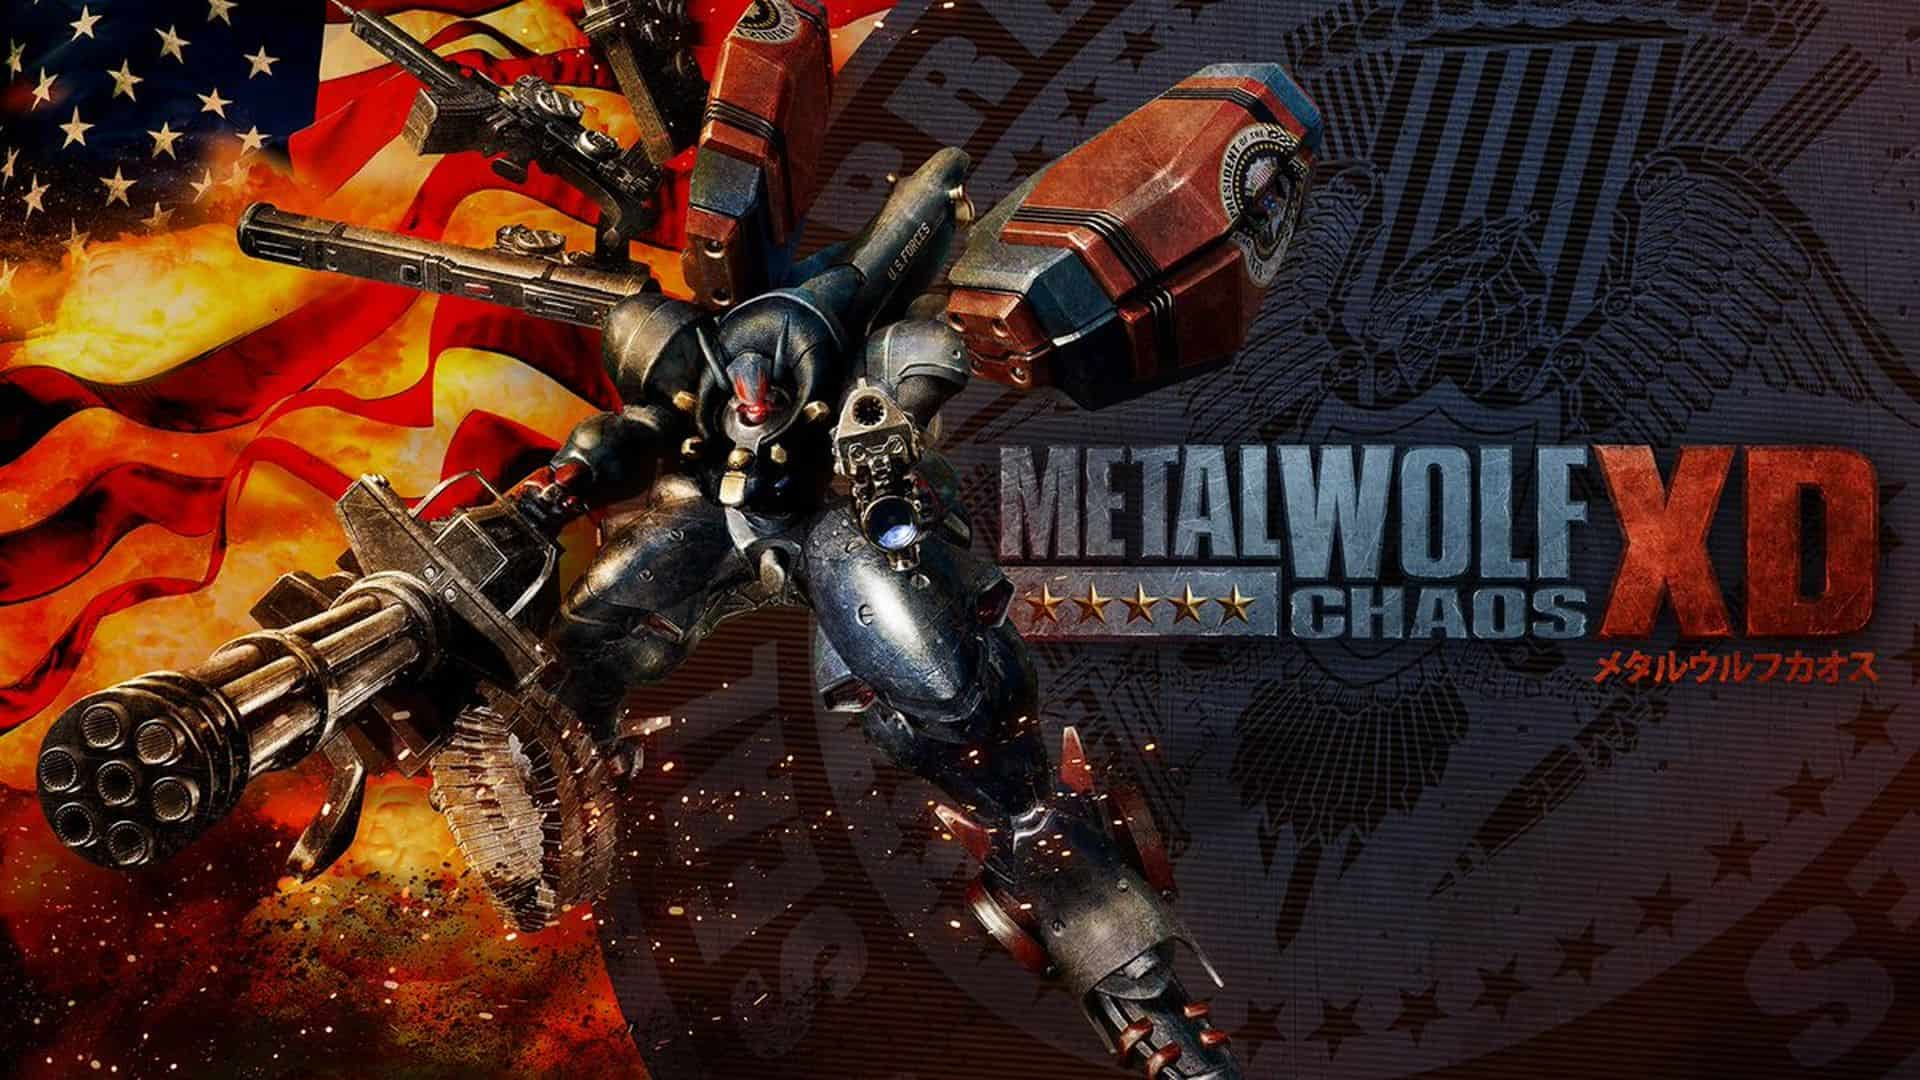 Metal Wolf Chaos XD Believes In Your Own Justice On August 6